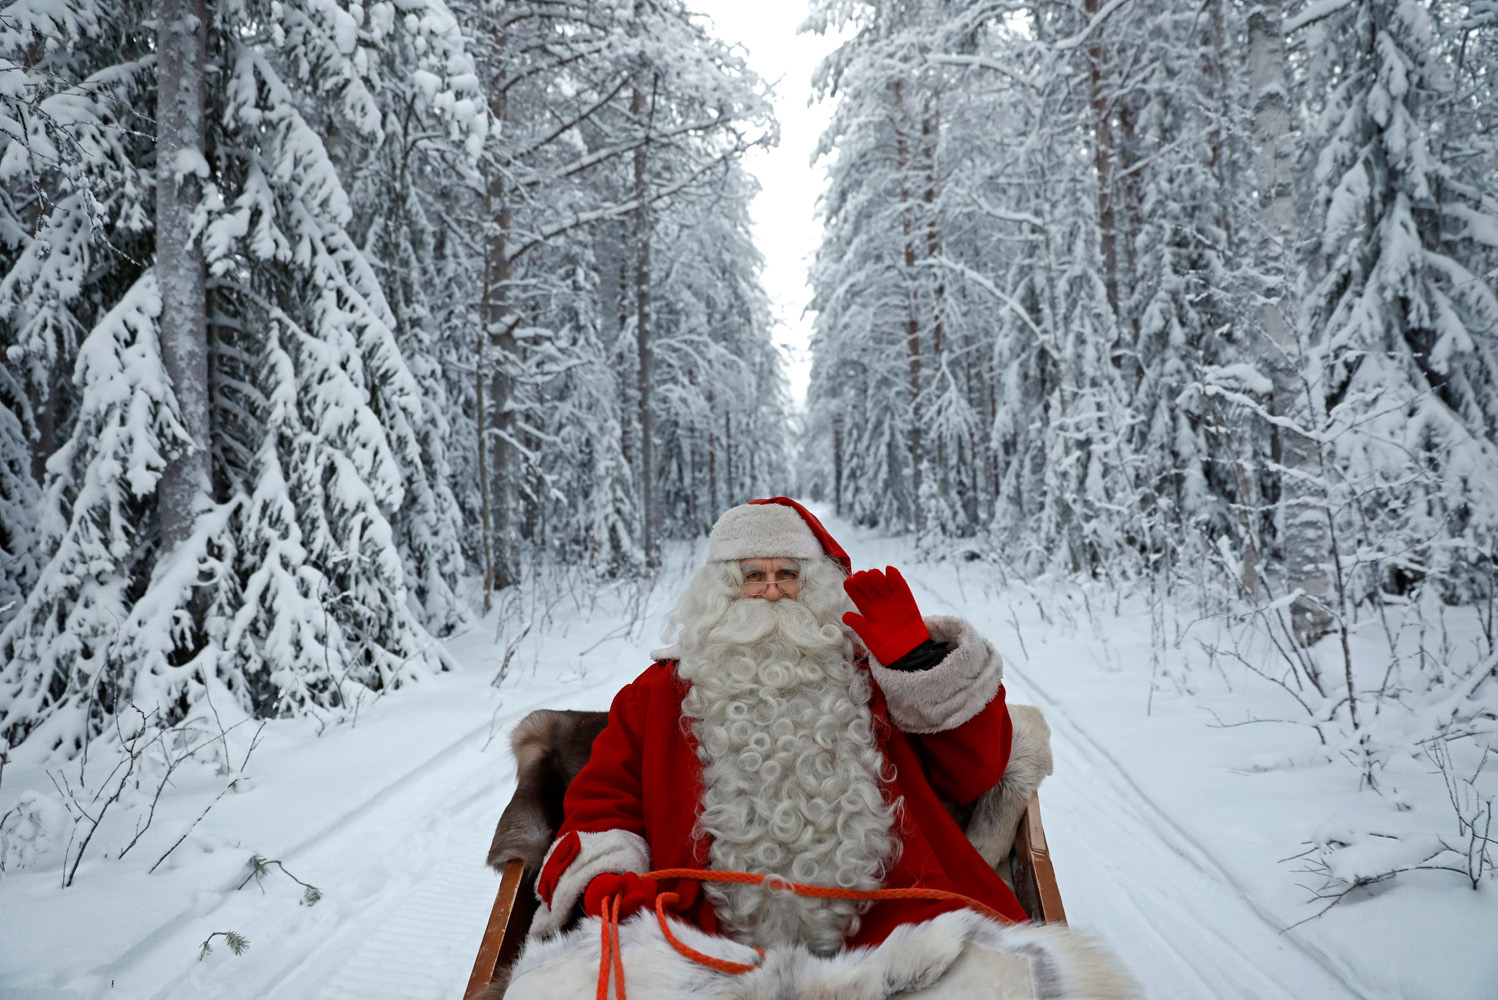 "Santa Claus rides in his sleigh as he prepares for Christmas in the Arctic Circle near Rovaniemi, Finland December 15, 2016. REUTERS/Pawel Kopczynski SEARCH ""KOPCZYNSKI SANTA"" FOR THIS STORY. SEARCH ""THE WIDER IMAGE"" FOR ALL STORIES TPX IMAGES OF THE DAY"